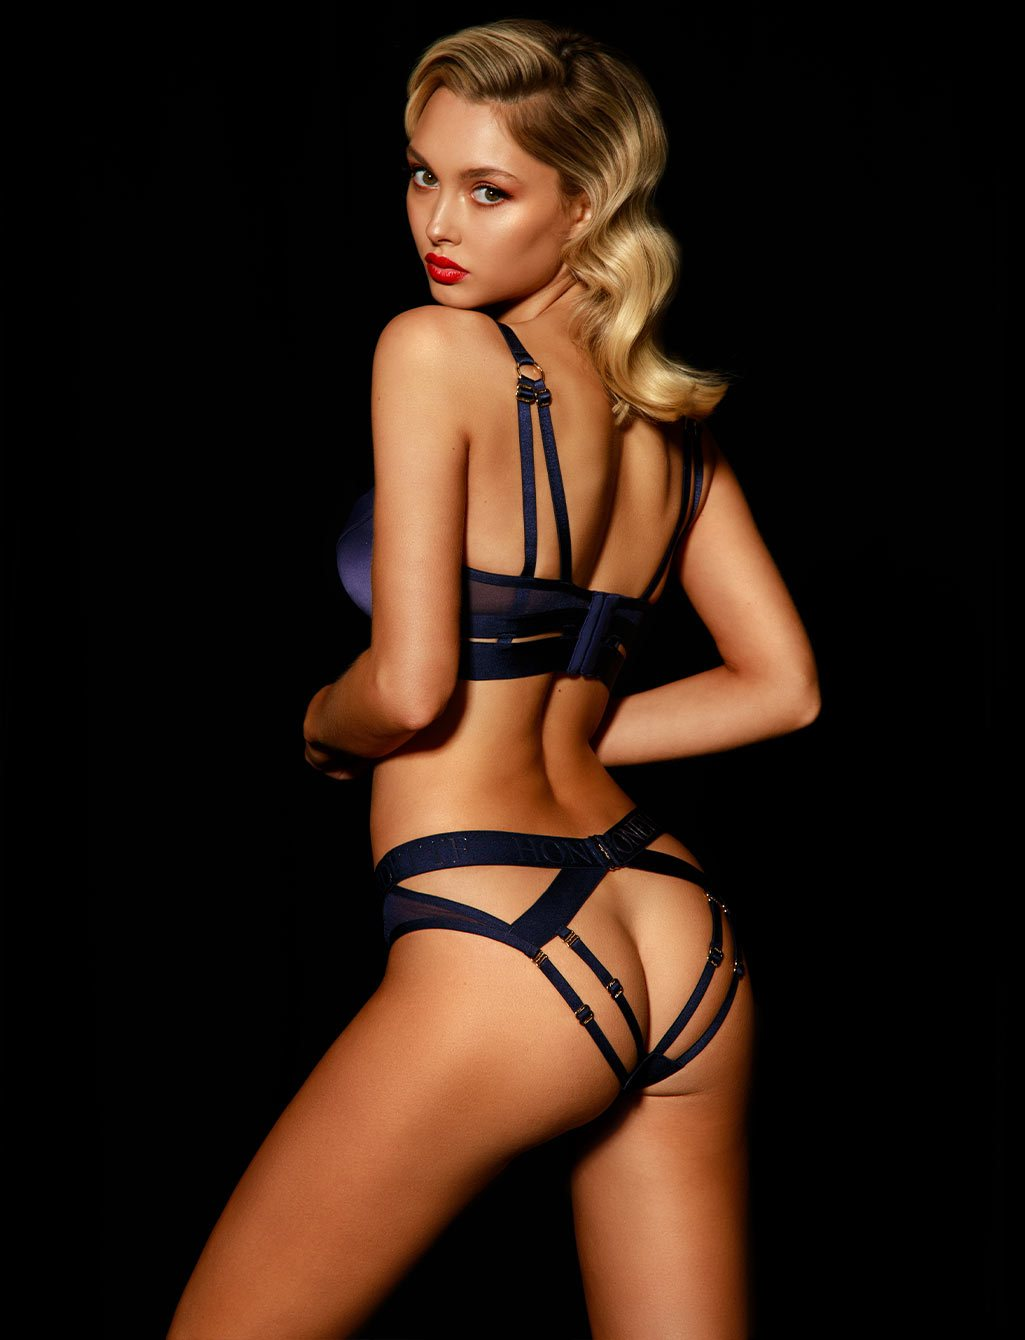 Elvis Navy Brief - Shop Lingerie | Honey Birdette